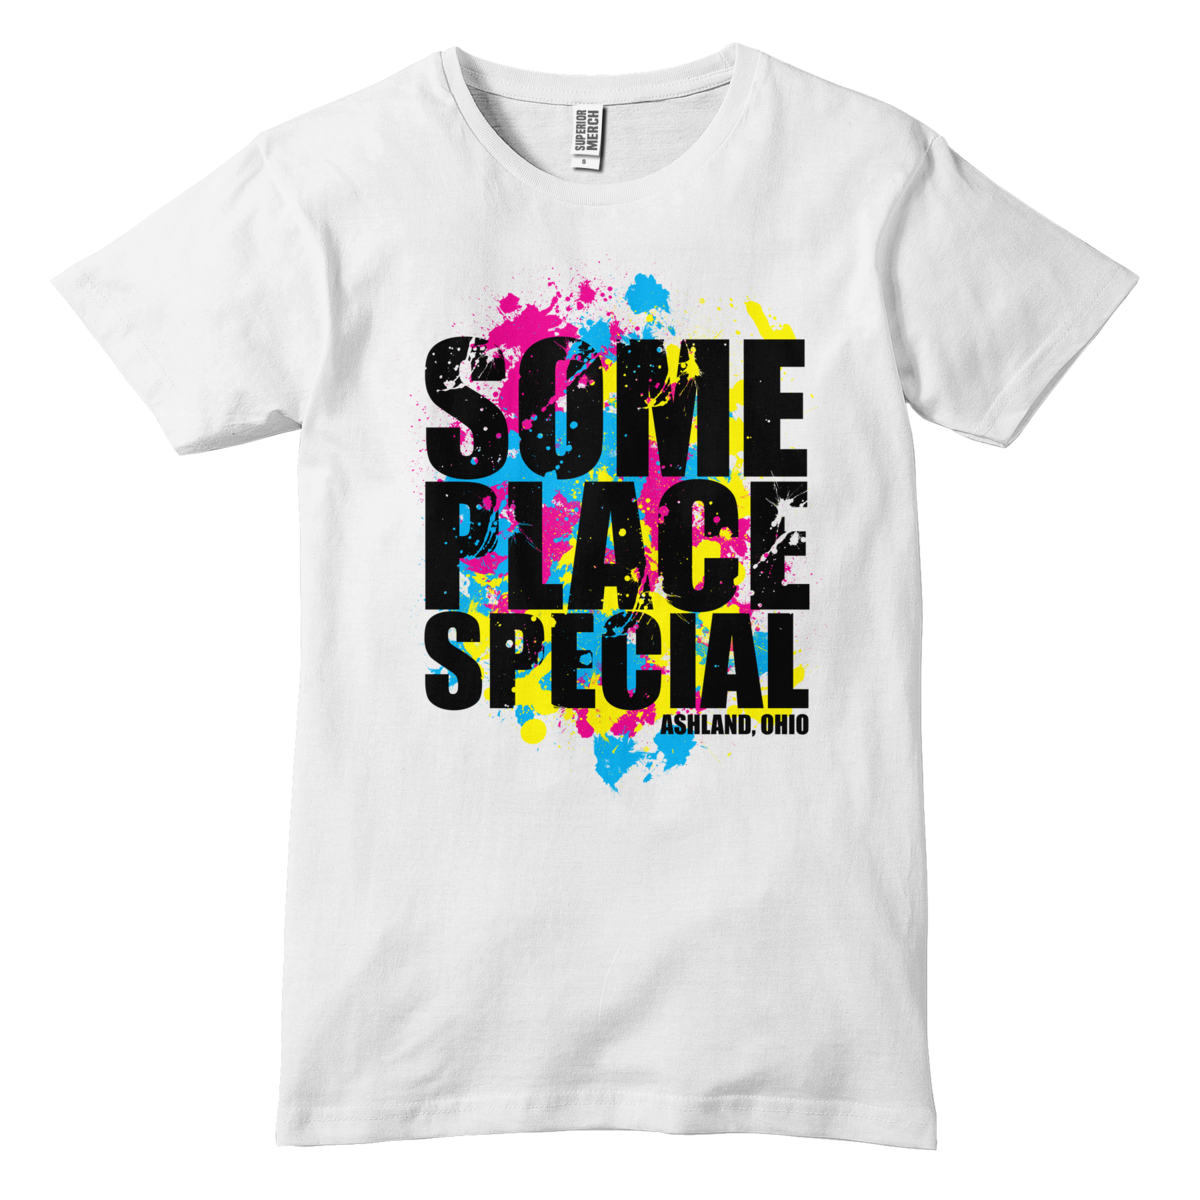 Someplace Special - Splatter T-Shirt